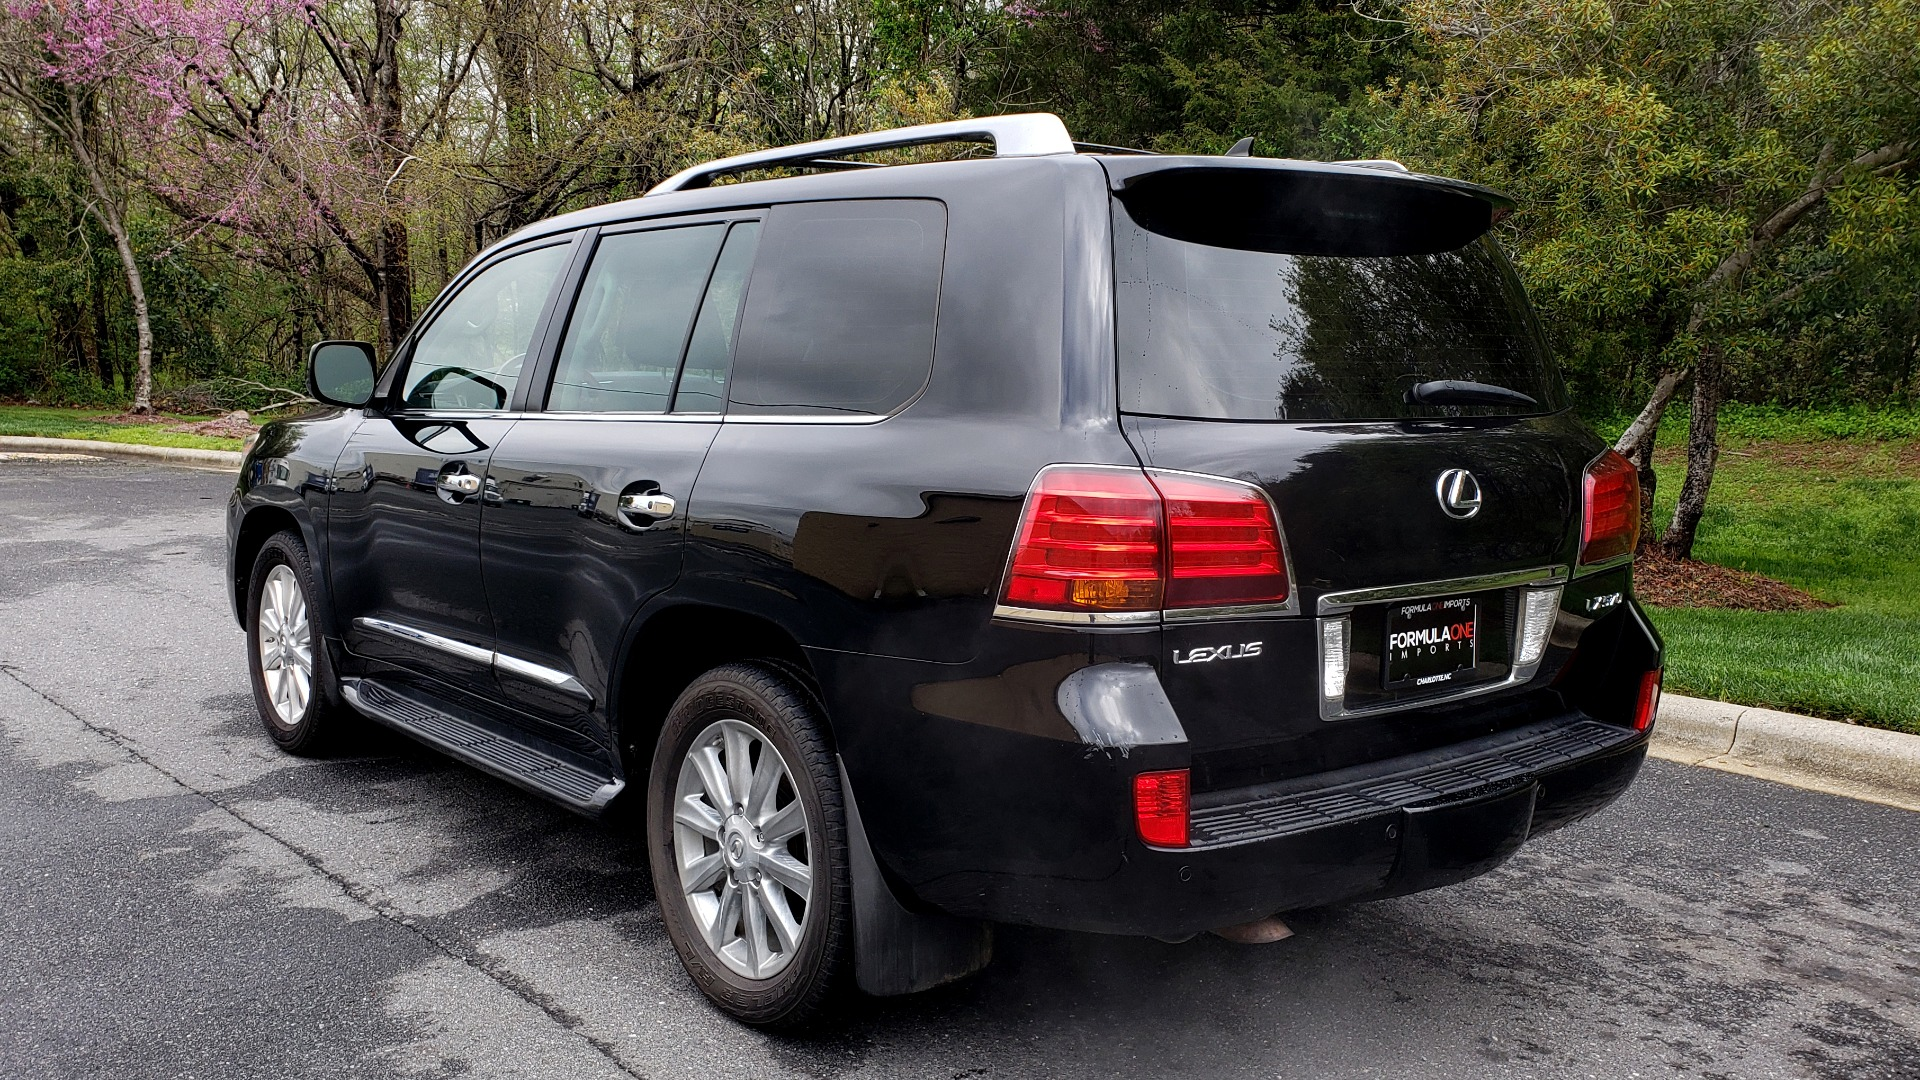 Used 2008 Lexus LX 570 4WD / TECH PKG / NAV / SUNROOF / MARK LEVINSON / PARK ASST for sale $22,995 at Formula Imports in Charlotte NC 28227 3